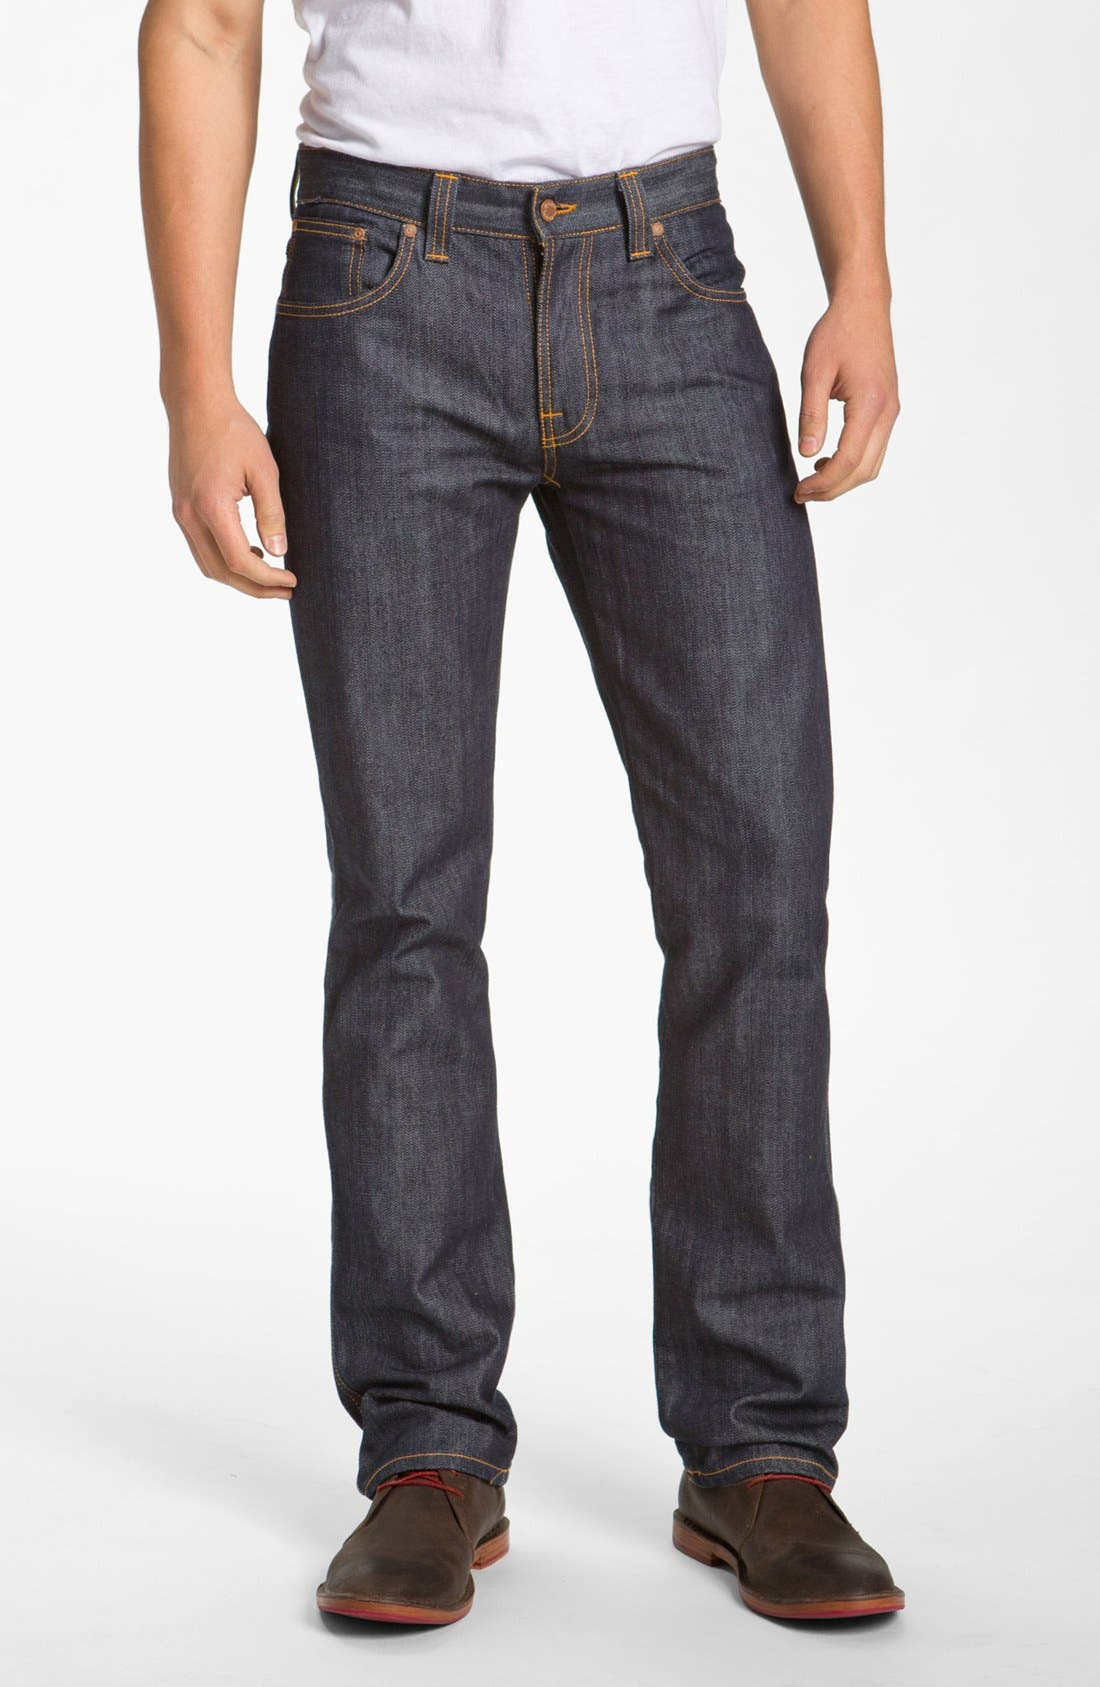 Main Image - Nudie Jeans 'Slim Jim' Slim Fit Jeans (Organic Dry Broken Twill)